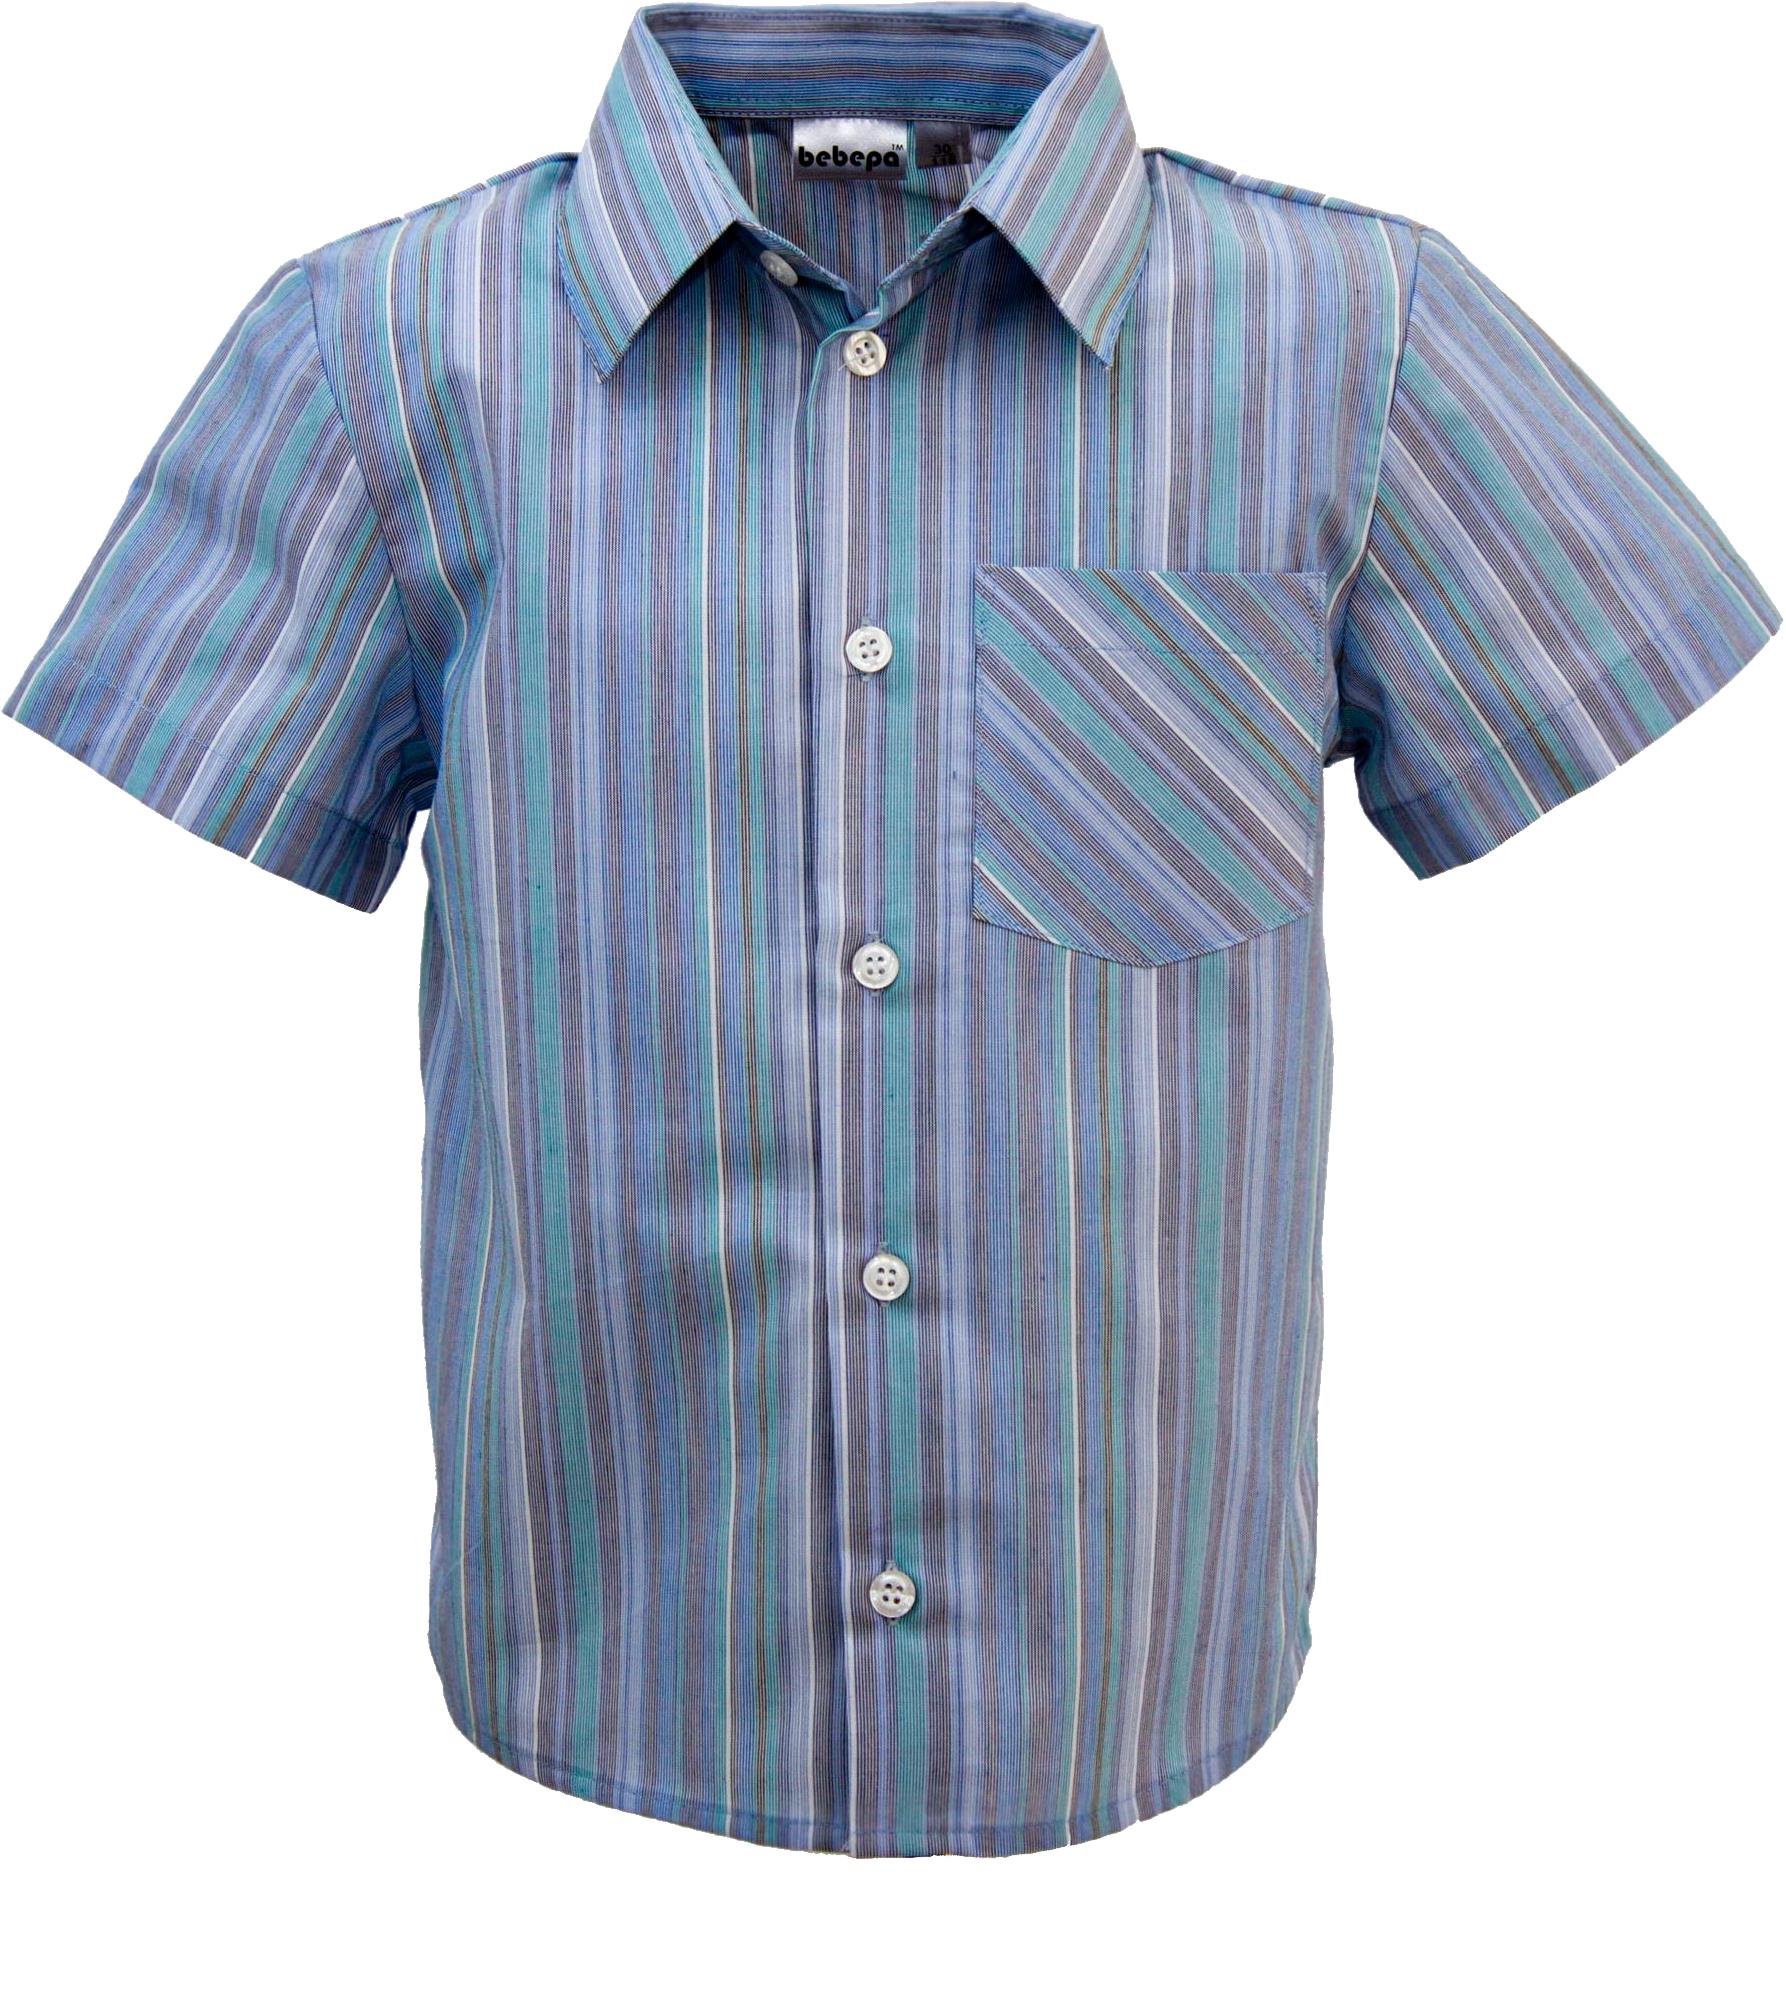 Clothing PNG Images.